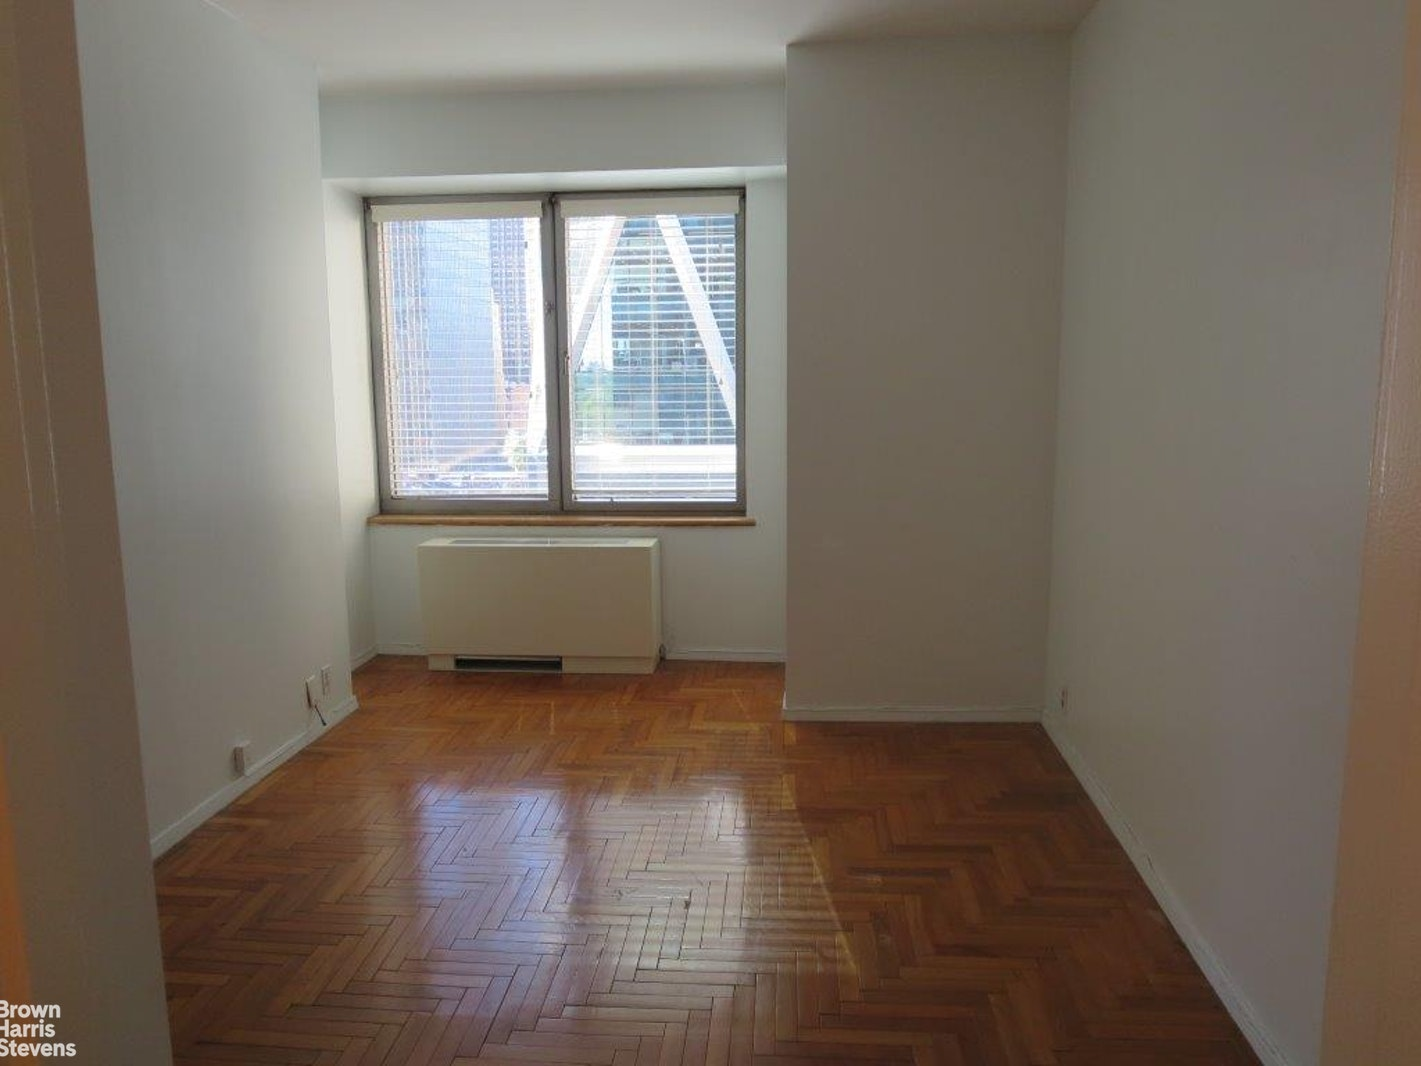 NO FEE APARTMENT! A desirable layout one bedroom, one bath  at the Central Park Place Condominium, a midtown west location with 3 minutes walk to the infamous Central Park.The apartment has dramatic city & Hearst Building Southern views from both the living room and the bedroom. It is very bright and quiet.The separate kitchen has complete appliances and the unit has large closets space, an en-suite marble bathroom and gorgeous wooden floor.Central Park Place Condominium features a 24 hour doorman, Health Club with pool and sauna, sun deck landscape terrace on the 6th floor, residents lounge, and bike storage.The free membership includes all amenities.The building is located one block away from Central Park and Columbus Circle area. Easily access the 1,A,C,D,B trains at Columbus Circle right downstairs as well as Time Warner Center shops and Whole Foods, cafes, restaurants, shops, and nightlife.Condo board application required - No pets allowed.